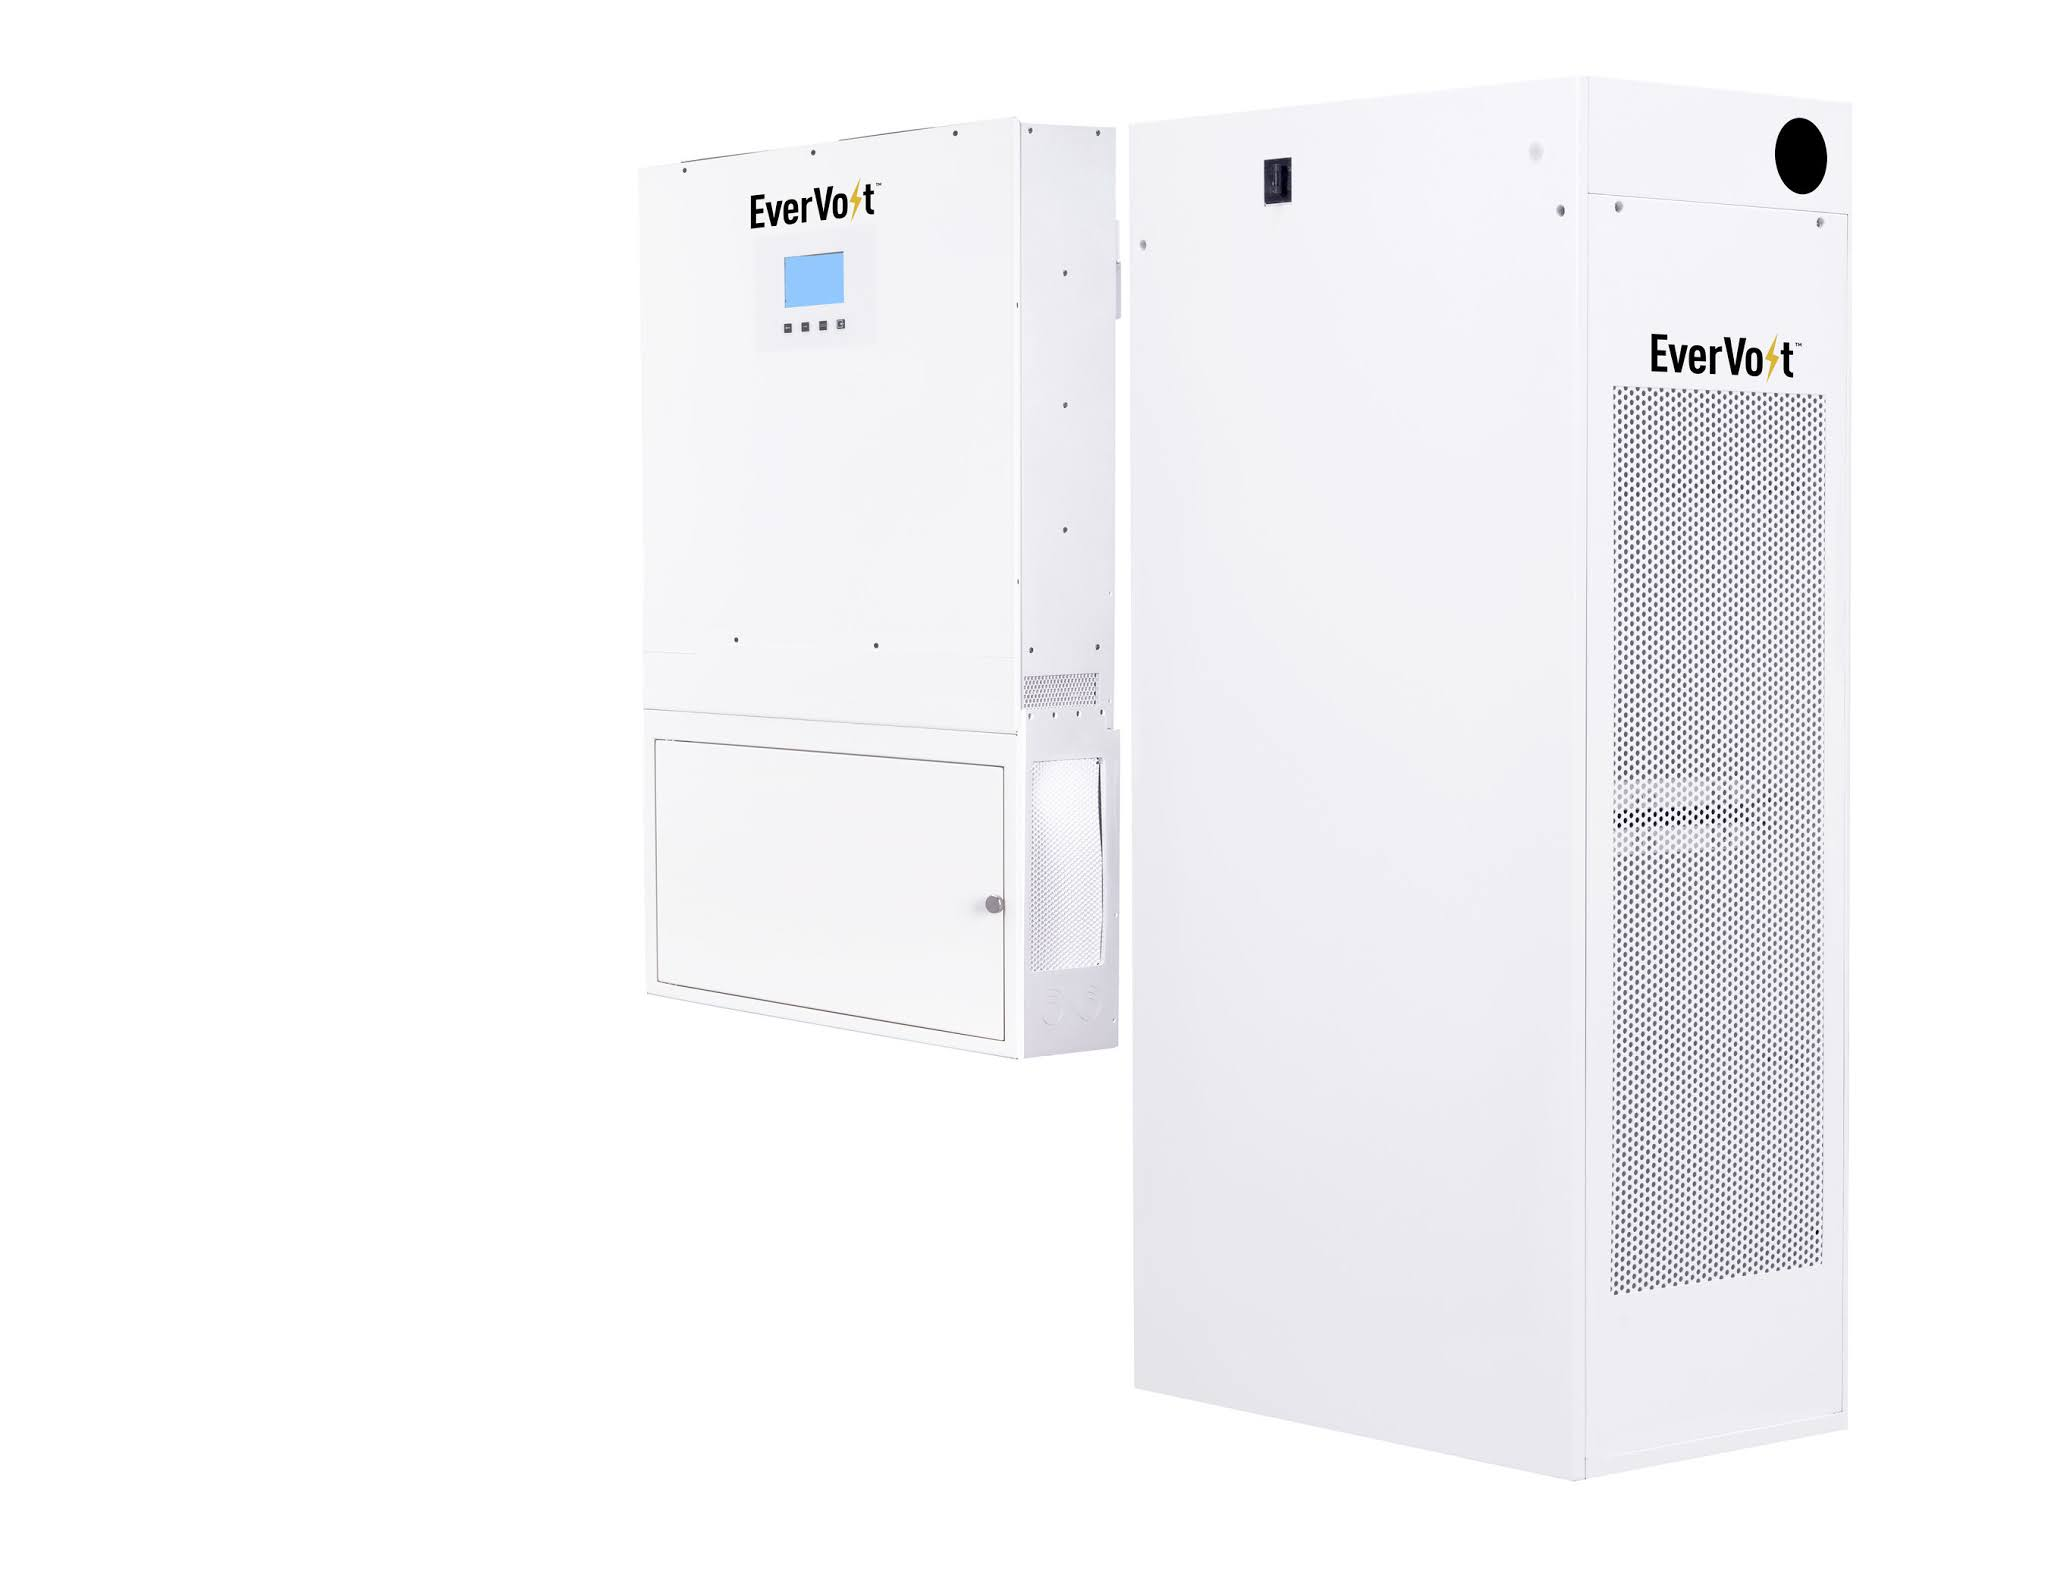 Panasonic Enhances Solar Options for Homeowners with Additional EverVolt Modules and Optimized Battery Storage Design